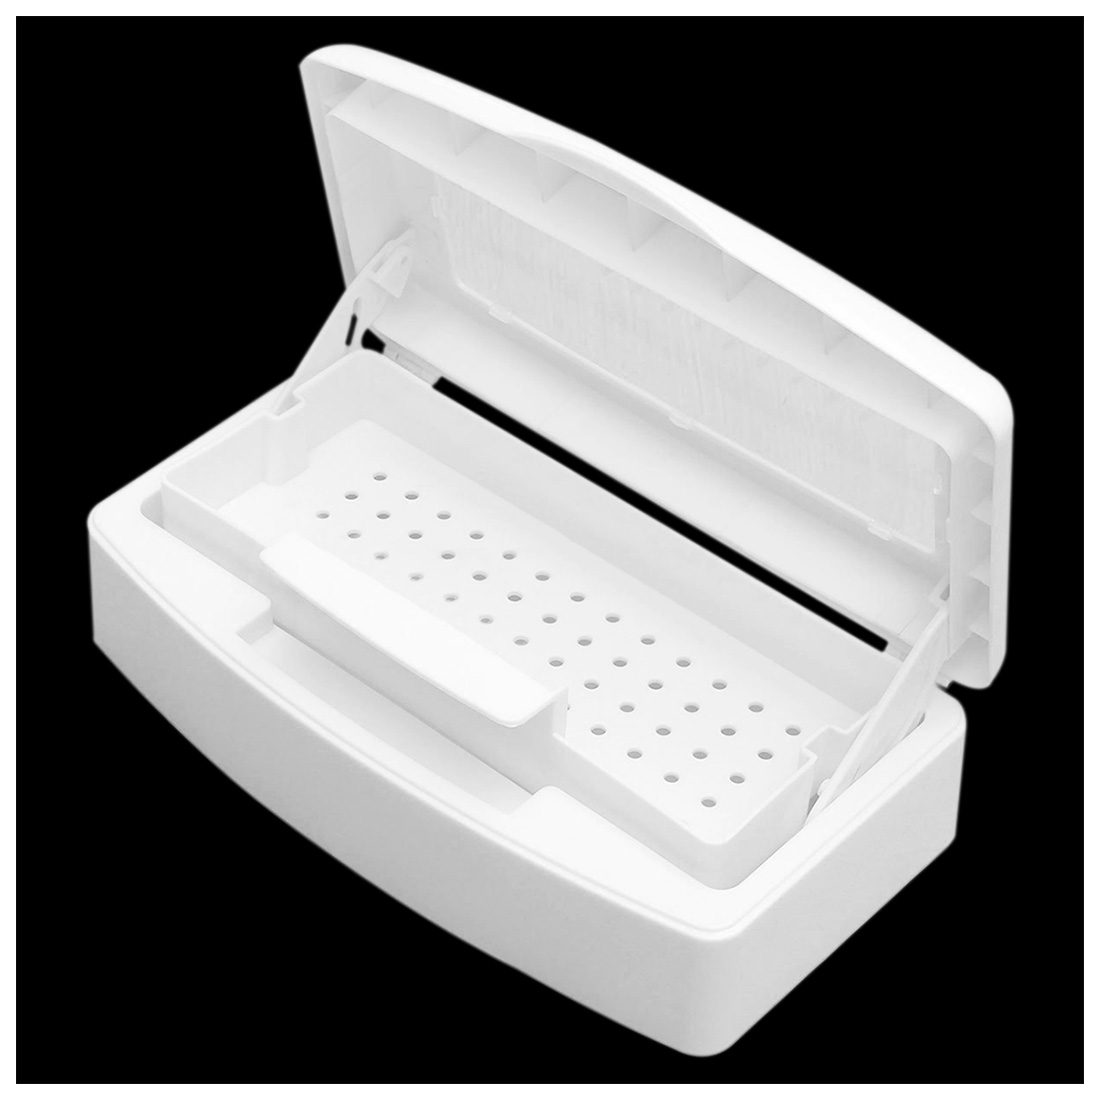 New Sterilizer Tray Box Sterilizing Clean Nail Art Salon Manicure Implement Tool, Type 1New Sterilizer Tray Box Sterilizing Clean Nail Art Salon Manicure Implement Tool, Type 1